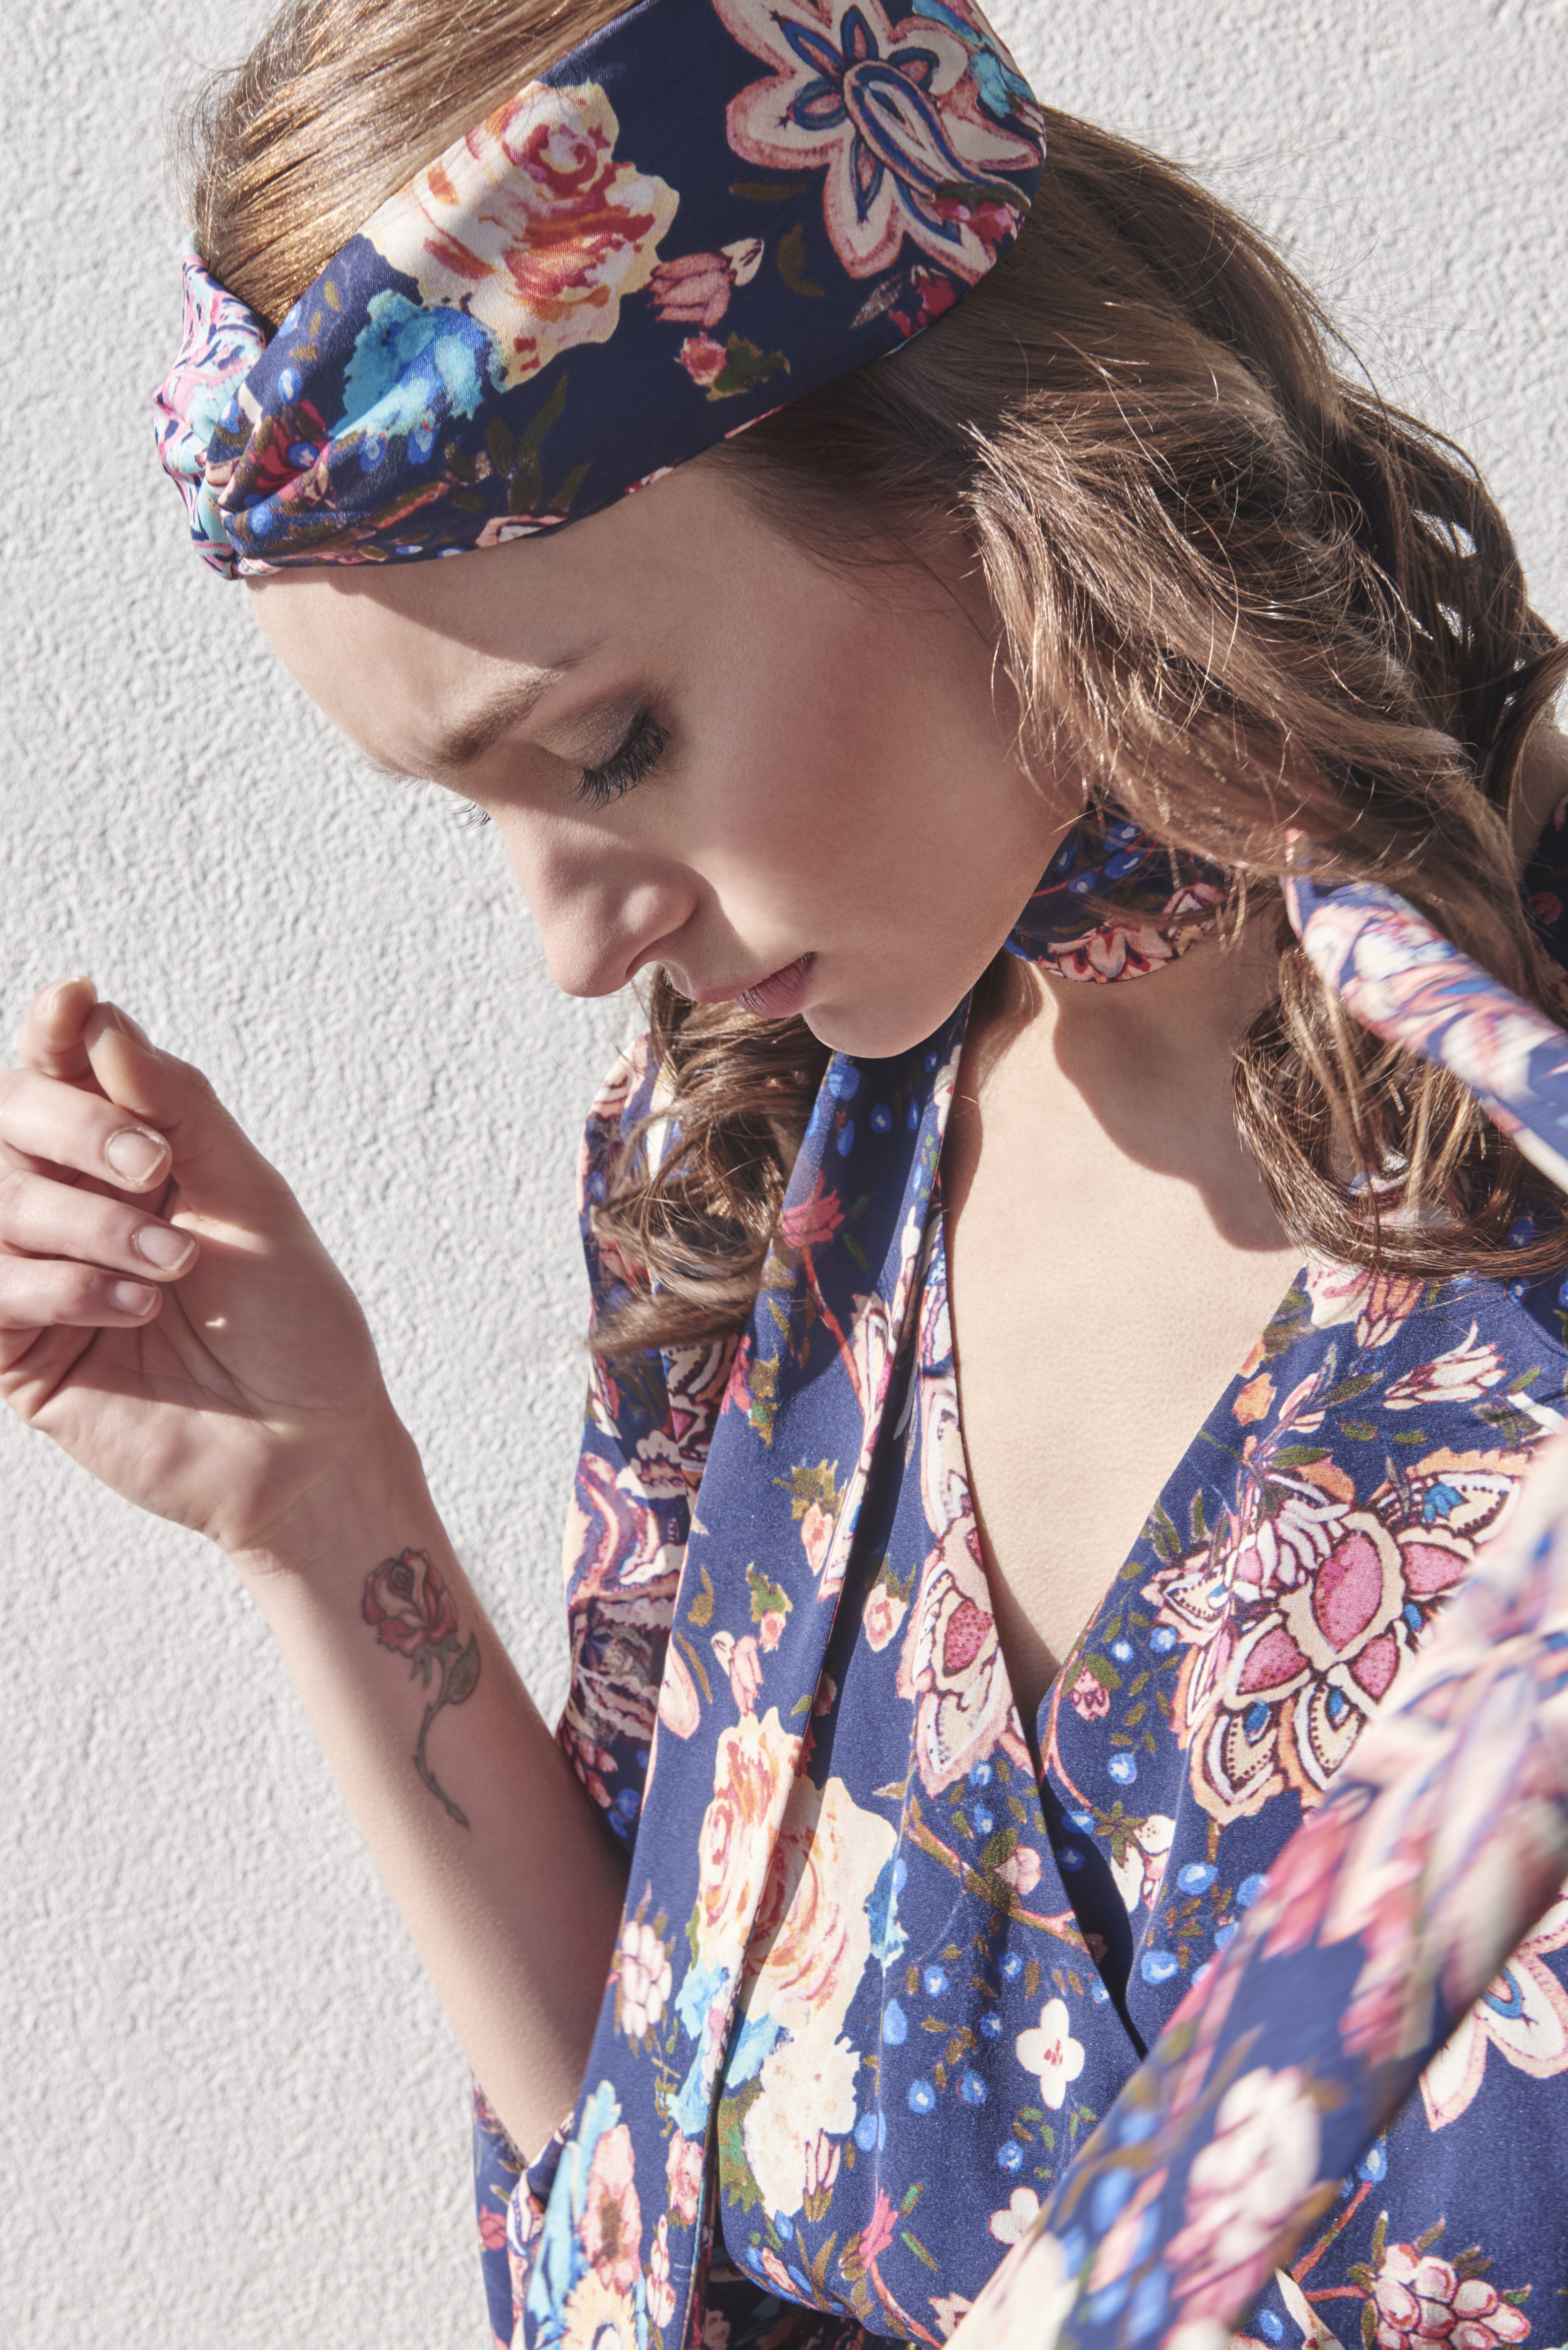 The Haute Hippie approach under creative director Cady Vaccaro.